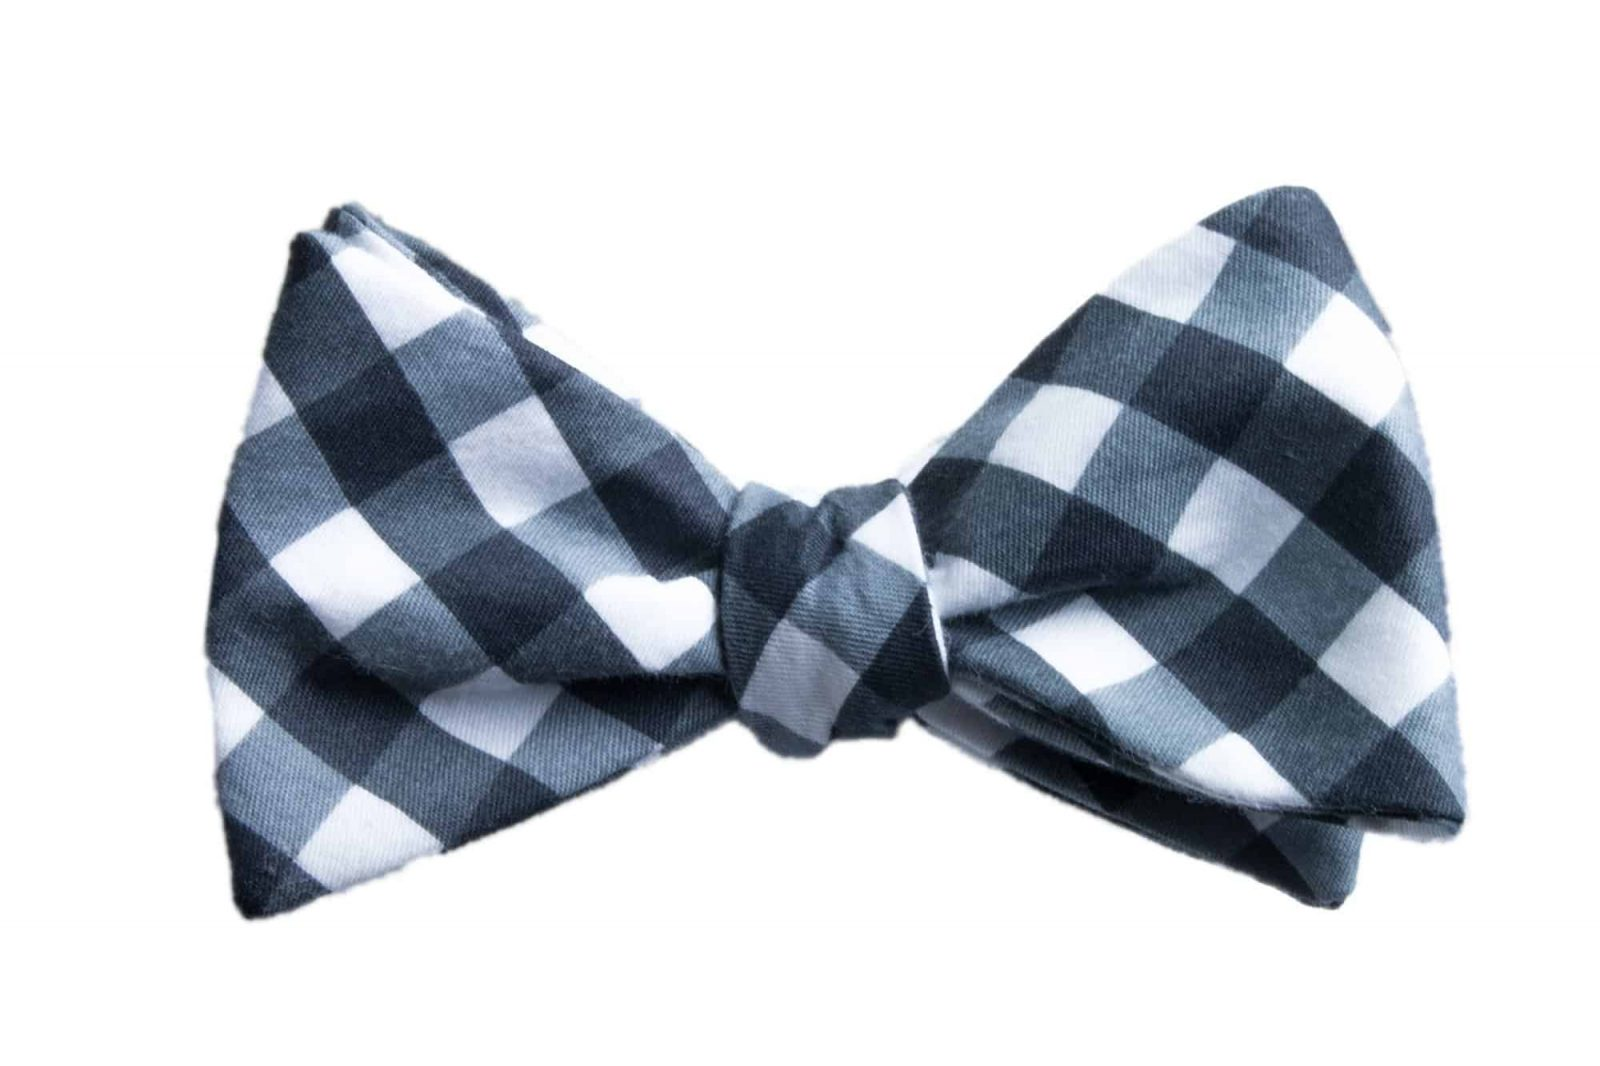 Checkered Bow Ties - Surprising as it may seem, not only chess players wear checkered bowties. Serious men have been observed on most solemn occasions wearing such a bow tie, and, almost invariably, succeeded in bringing shame upon themselves.